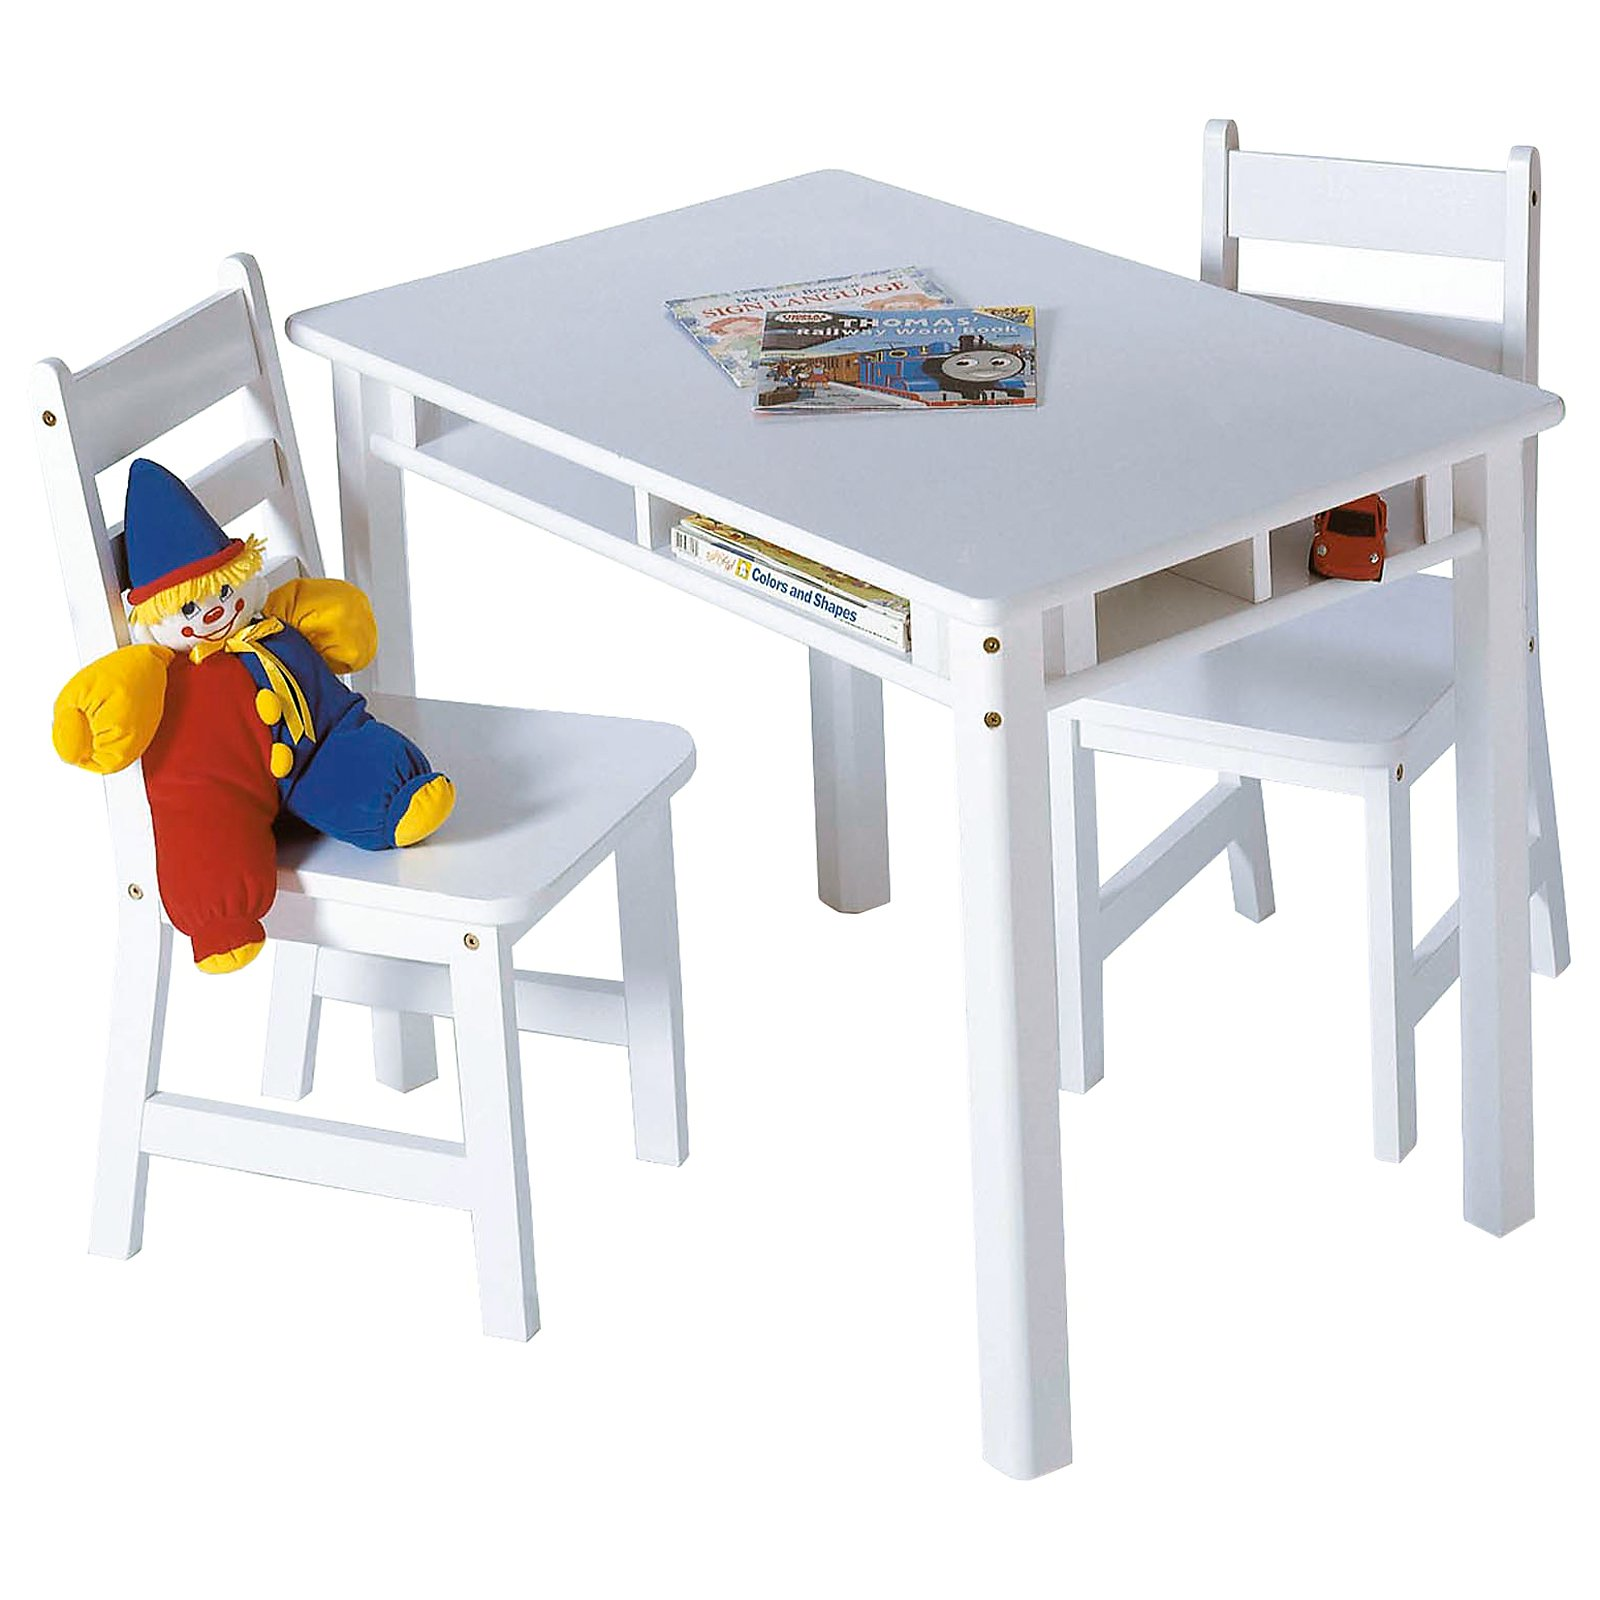 Lipper Childrens Rectangular Table and 2 Chairs Set with Shelves Multiple Colors  sc 1 st  Walmart & Kidsu0027 Table u0026 Chair Sets - Walmart.com